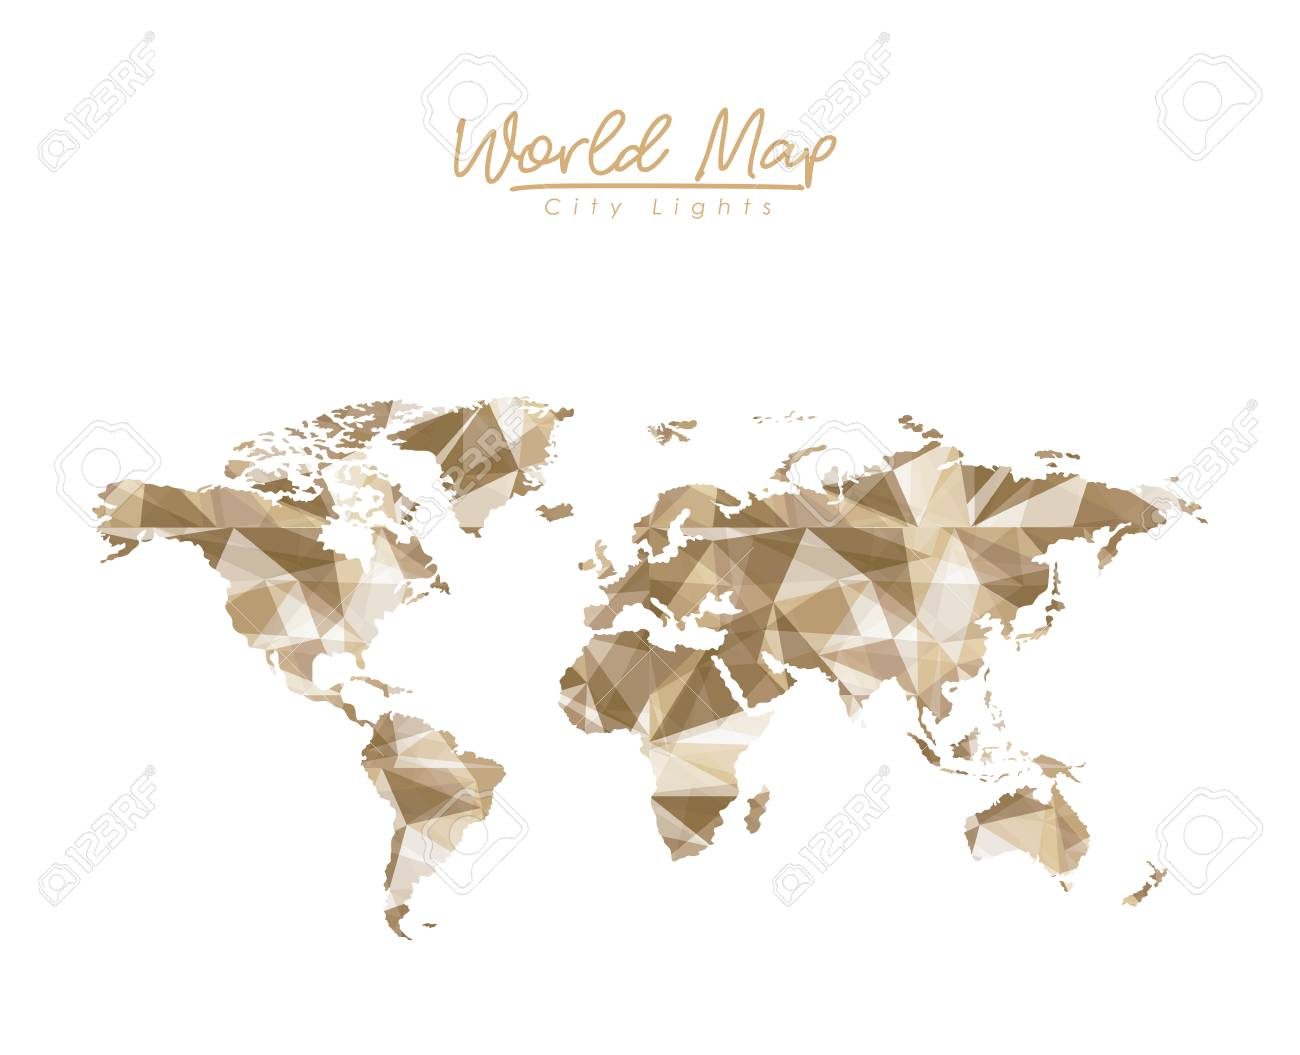 World map city lights in light brown polygon silhouette vector vector world map city lights in light brown polygon silhouette vector illustration gumiabroncs Choice Image